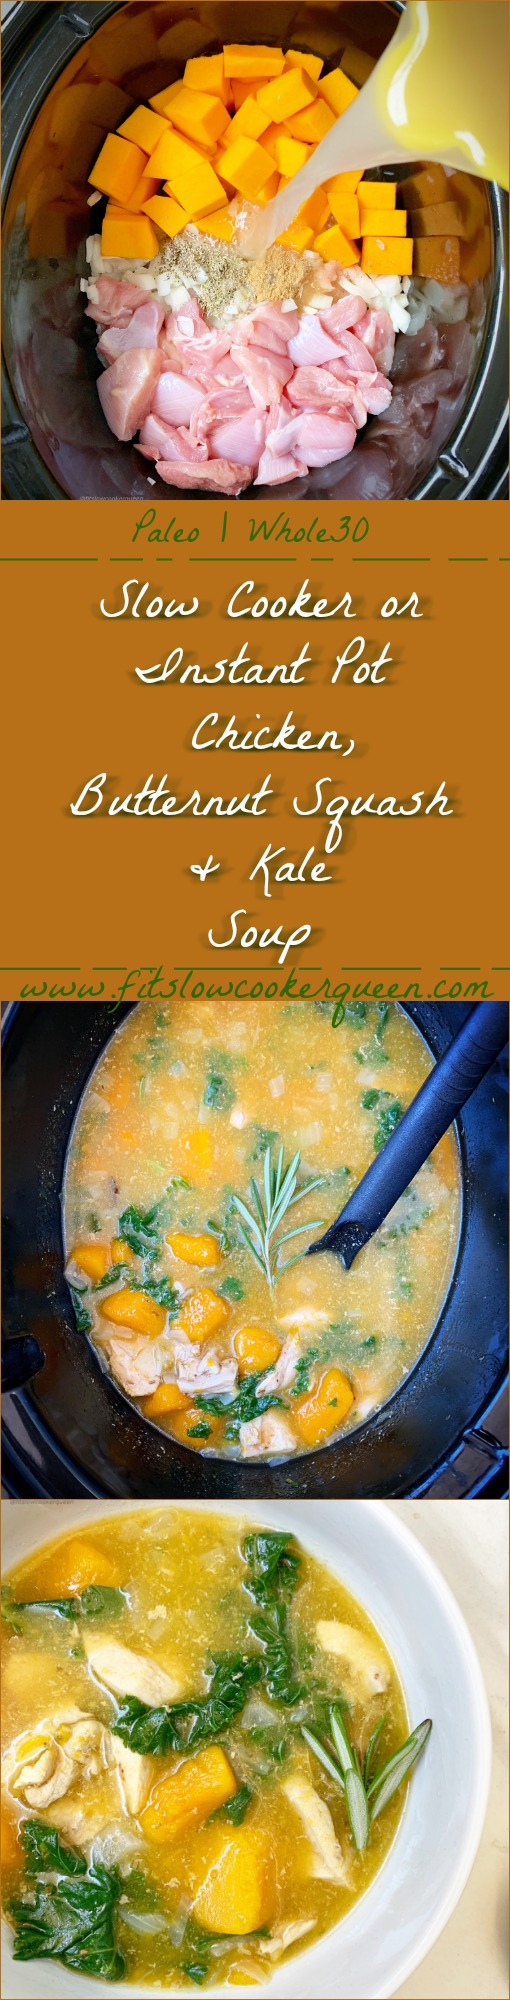 Chicken, butternut squash, and kale cook together in this easy paleo and whole30 compliant recipe. This soup can be made in your slow cooker or Instant Pot.